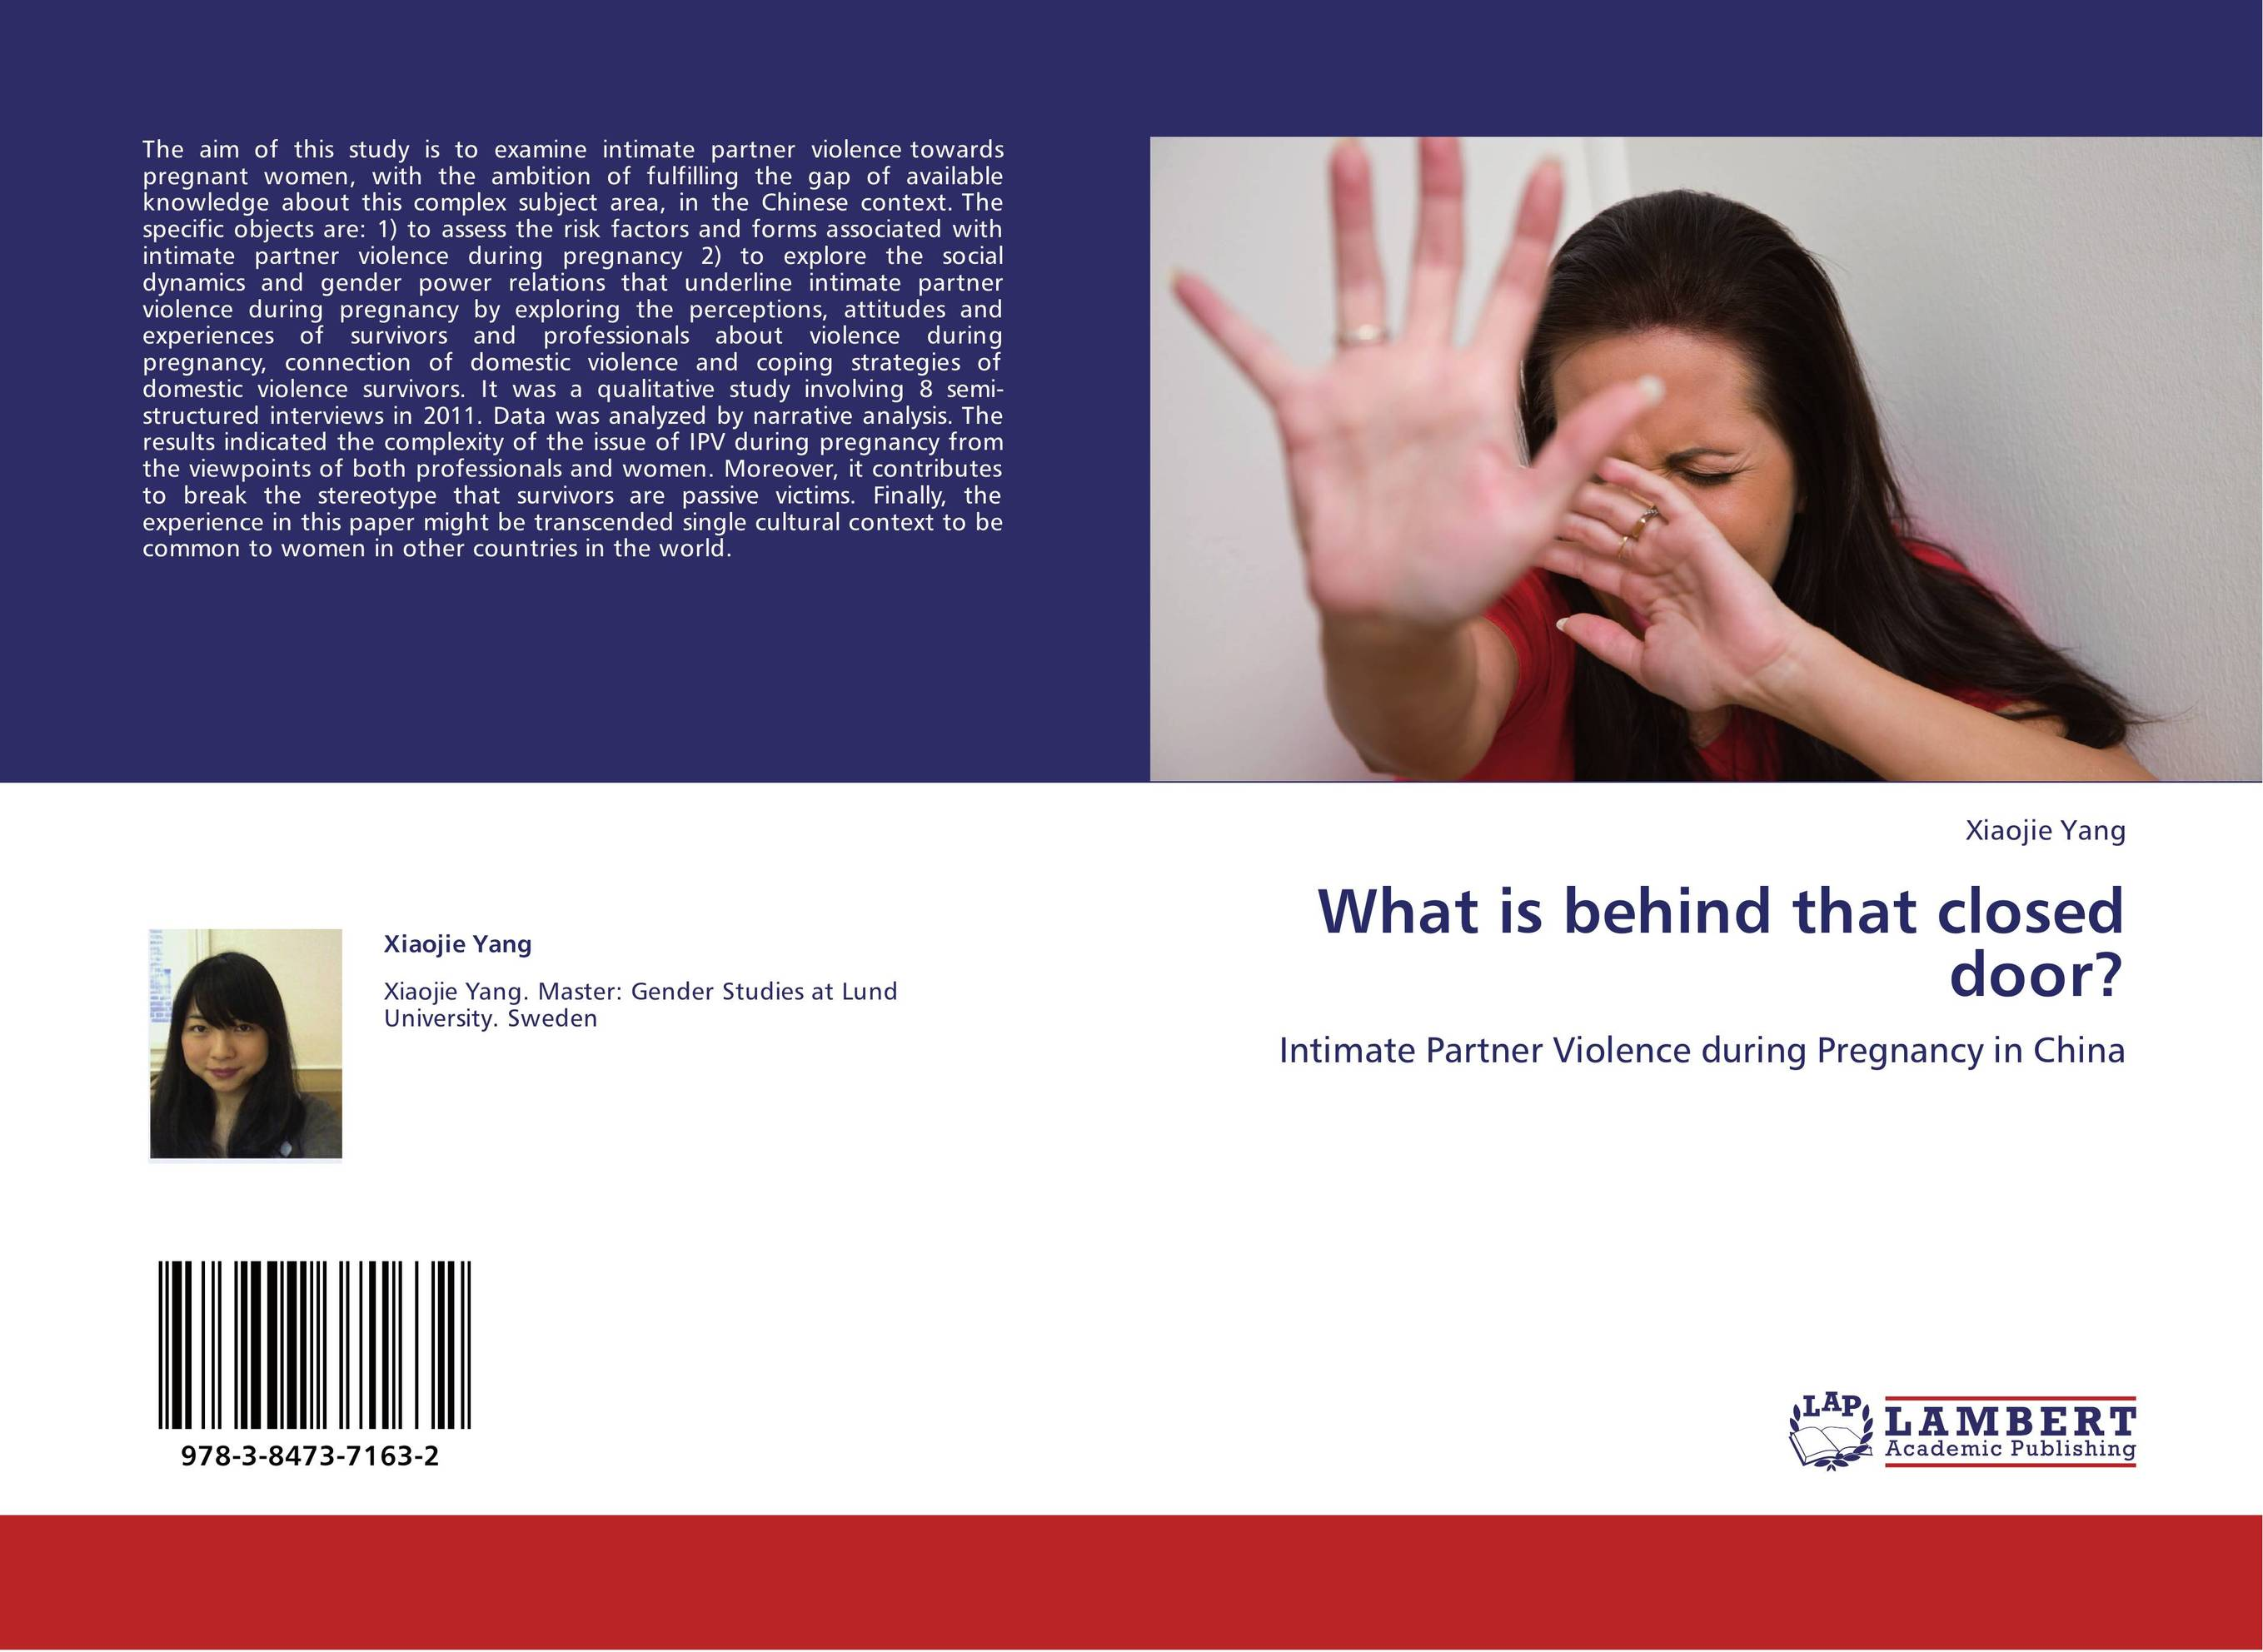 witnessing intimate partner violence Abuse is a pattern of behaviors typically used to exert control over another person intimate partner violence (ipv) is a form of abuse between two people in a relationship together, such as dating partners or spouses.